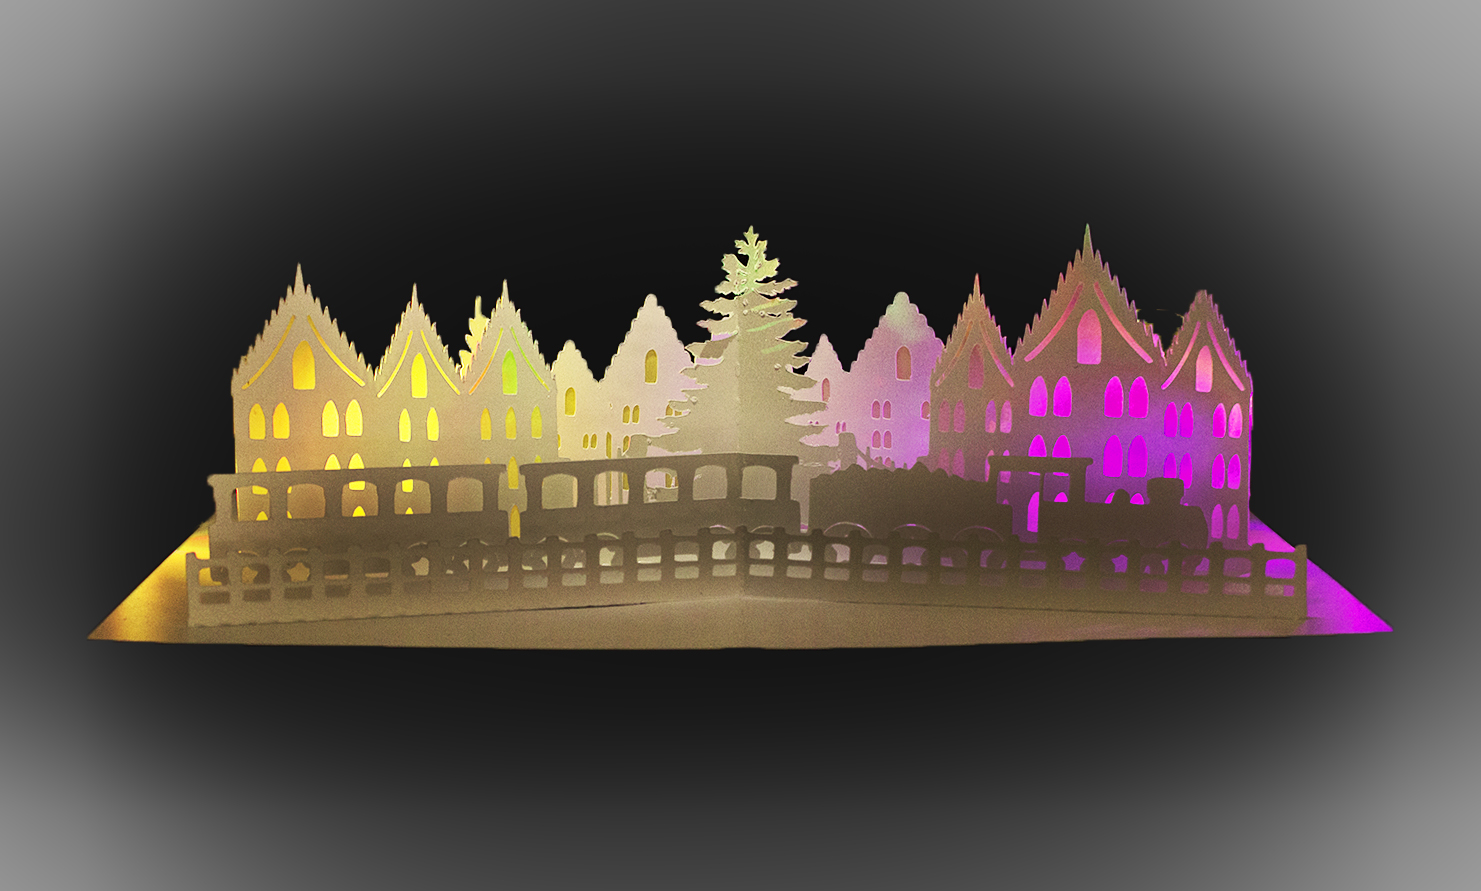 Festive Train pop up greetings card example image 4